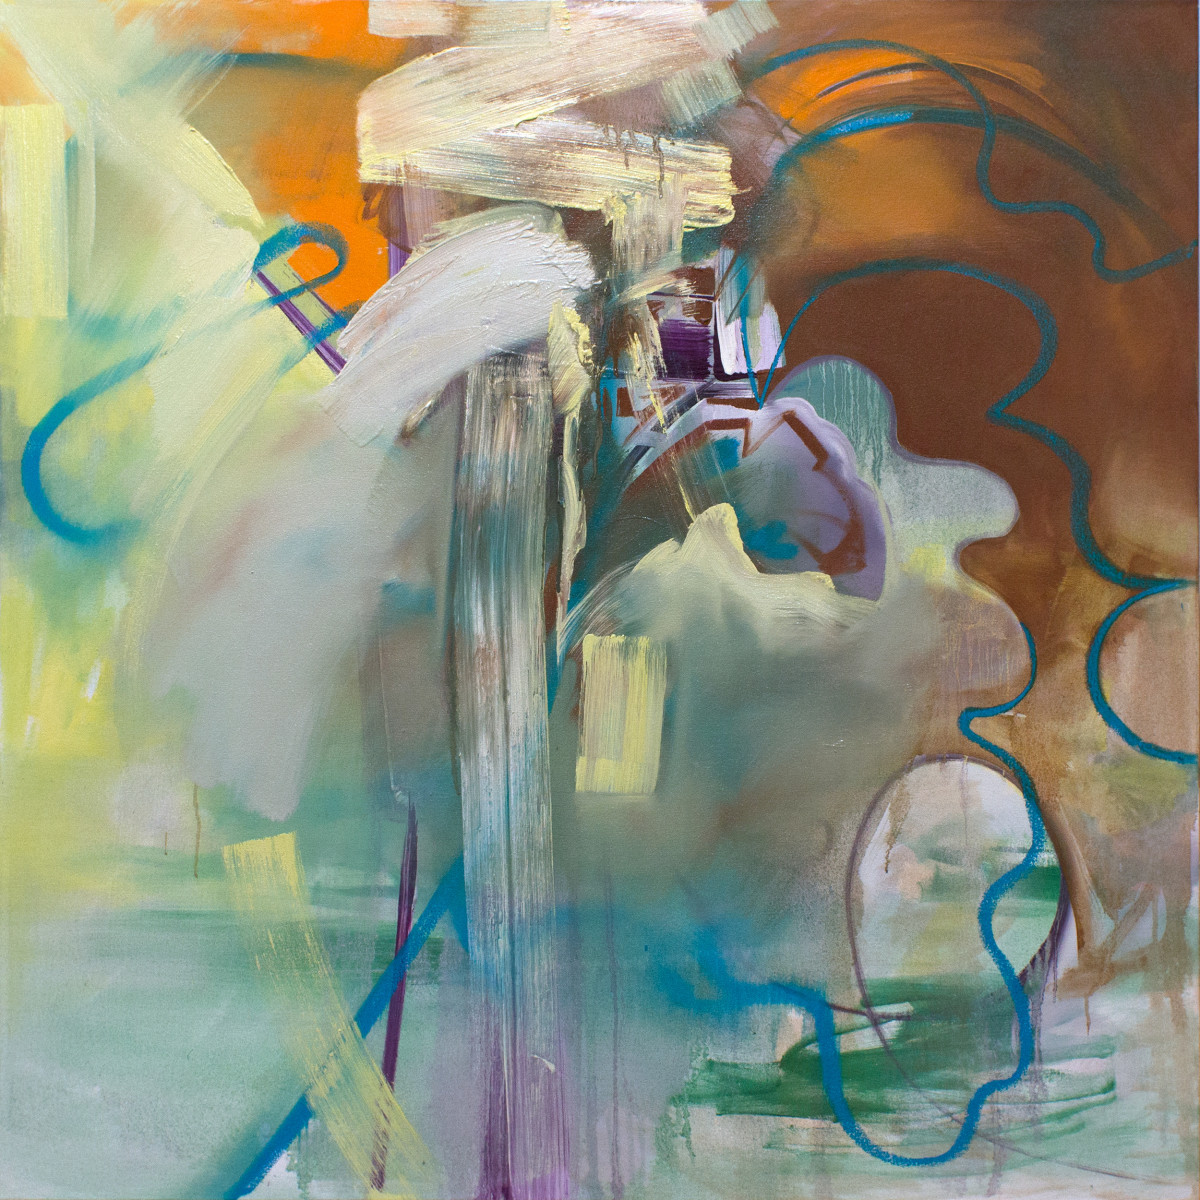 Abstract Study (new day) by Pamela Staker